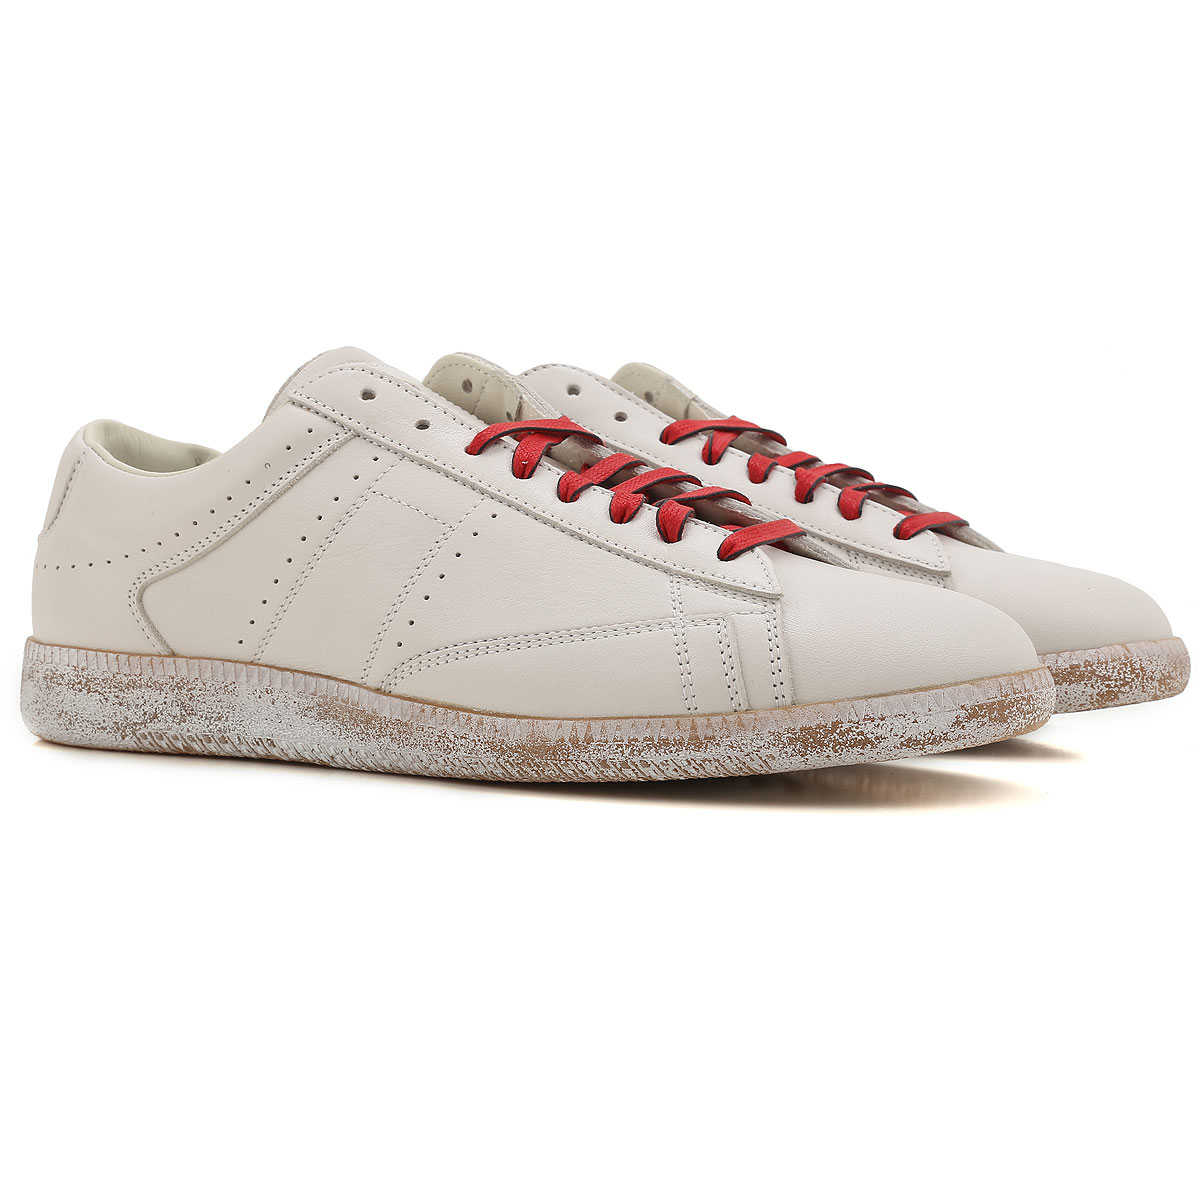 Maison Martin Margiela Sneakers for Men On Sale in Outlet